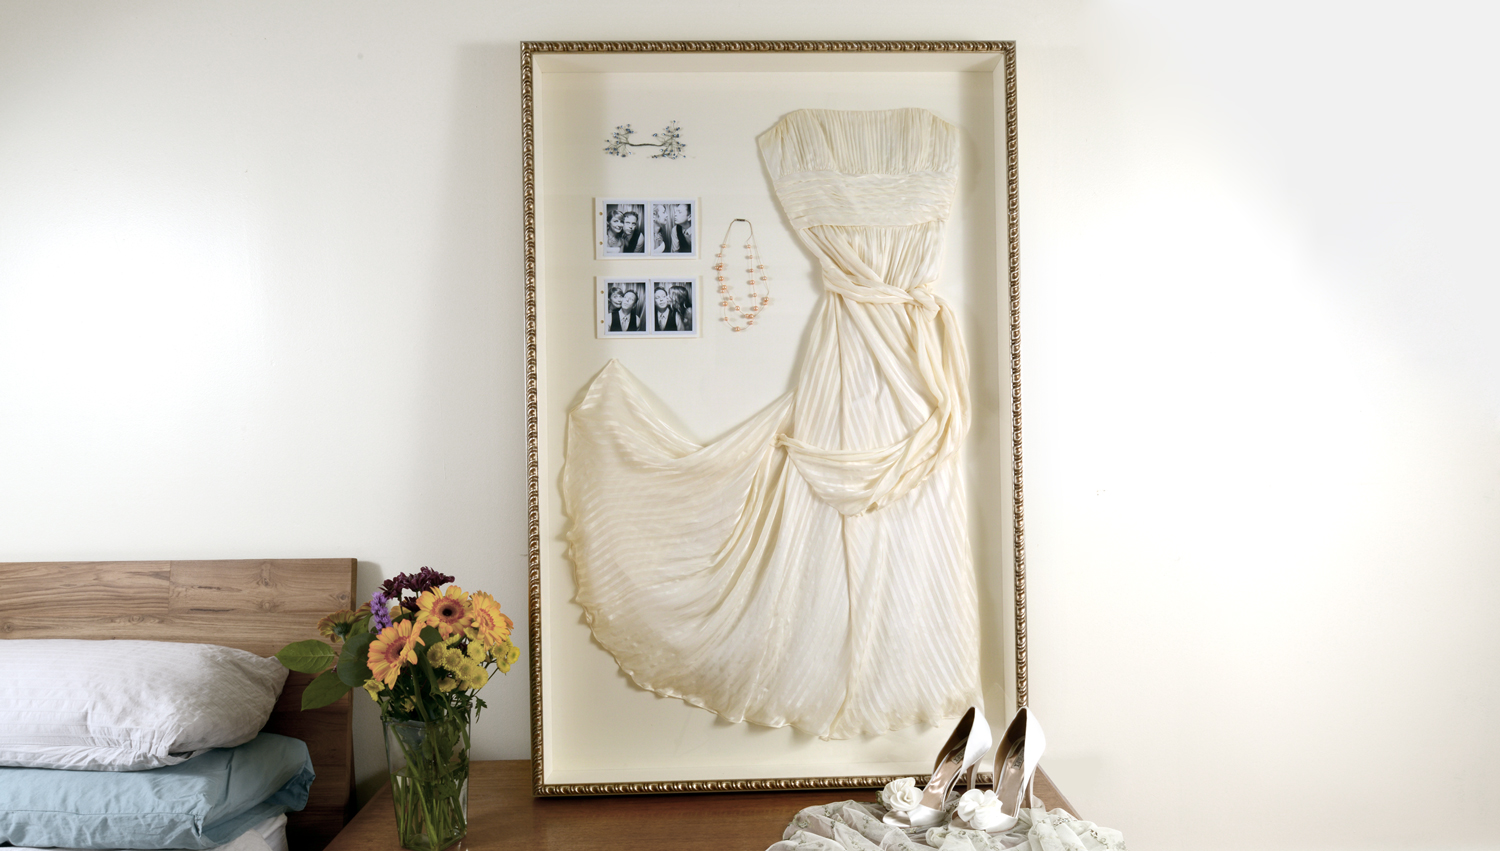 Frame It The Wedding Dress Chicago Frame Shop Custom Picture Framing Store Artists Frame Service